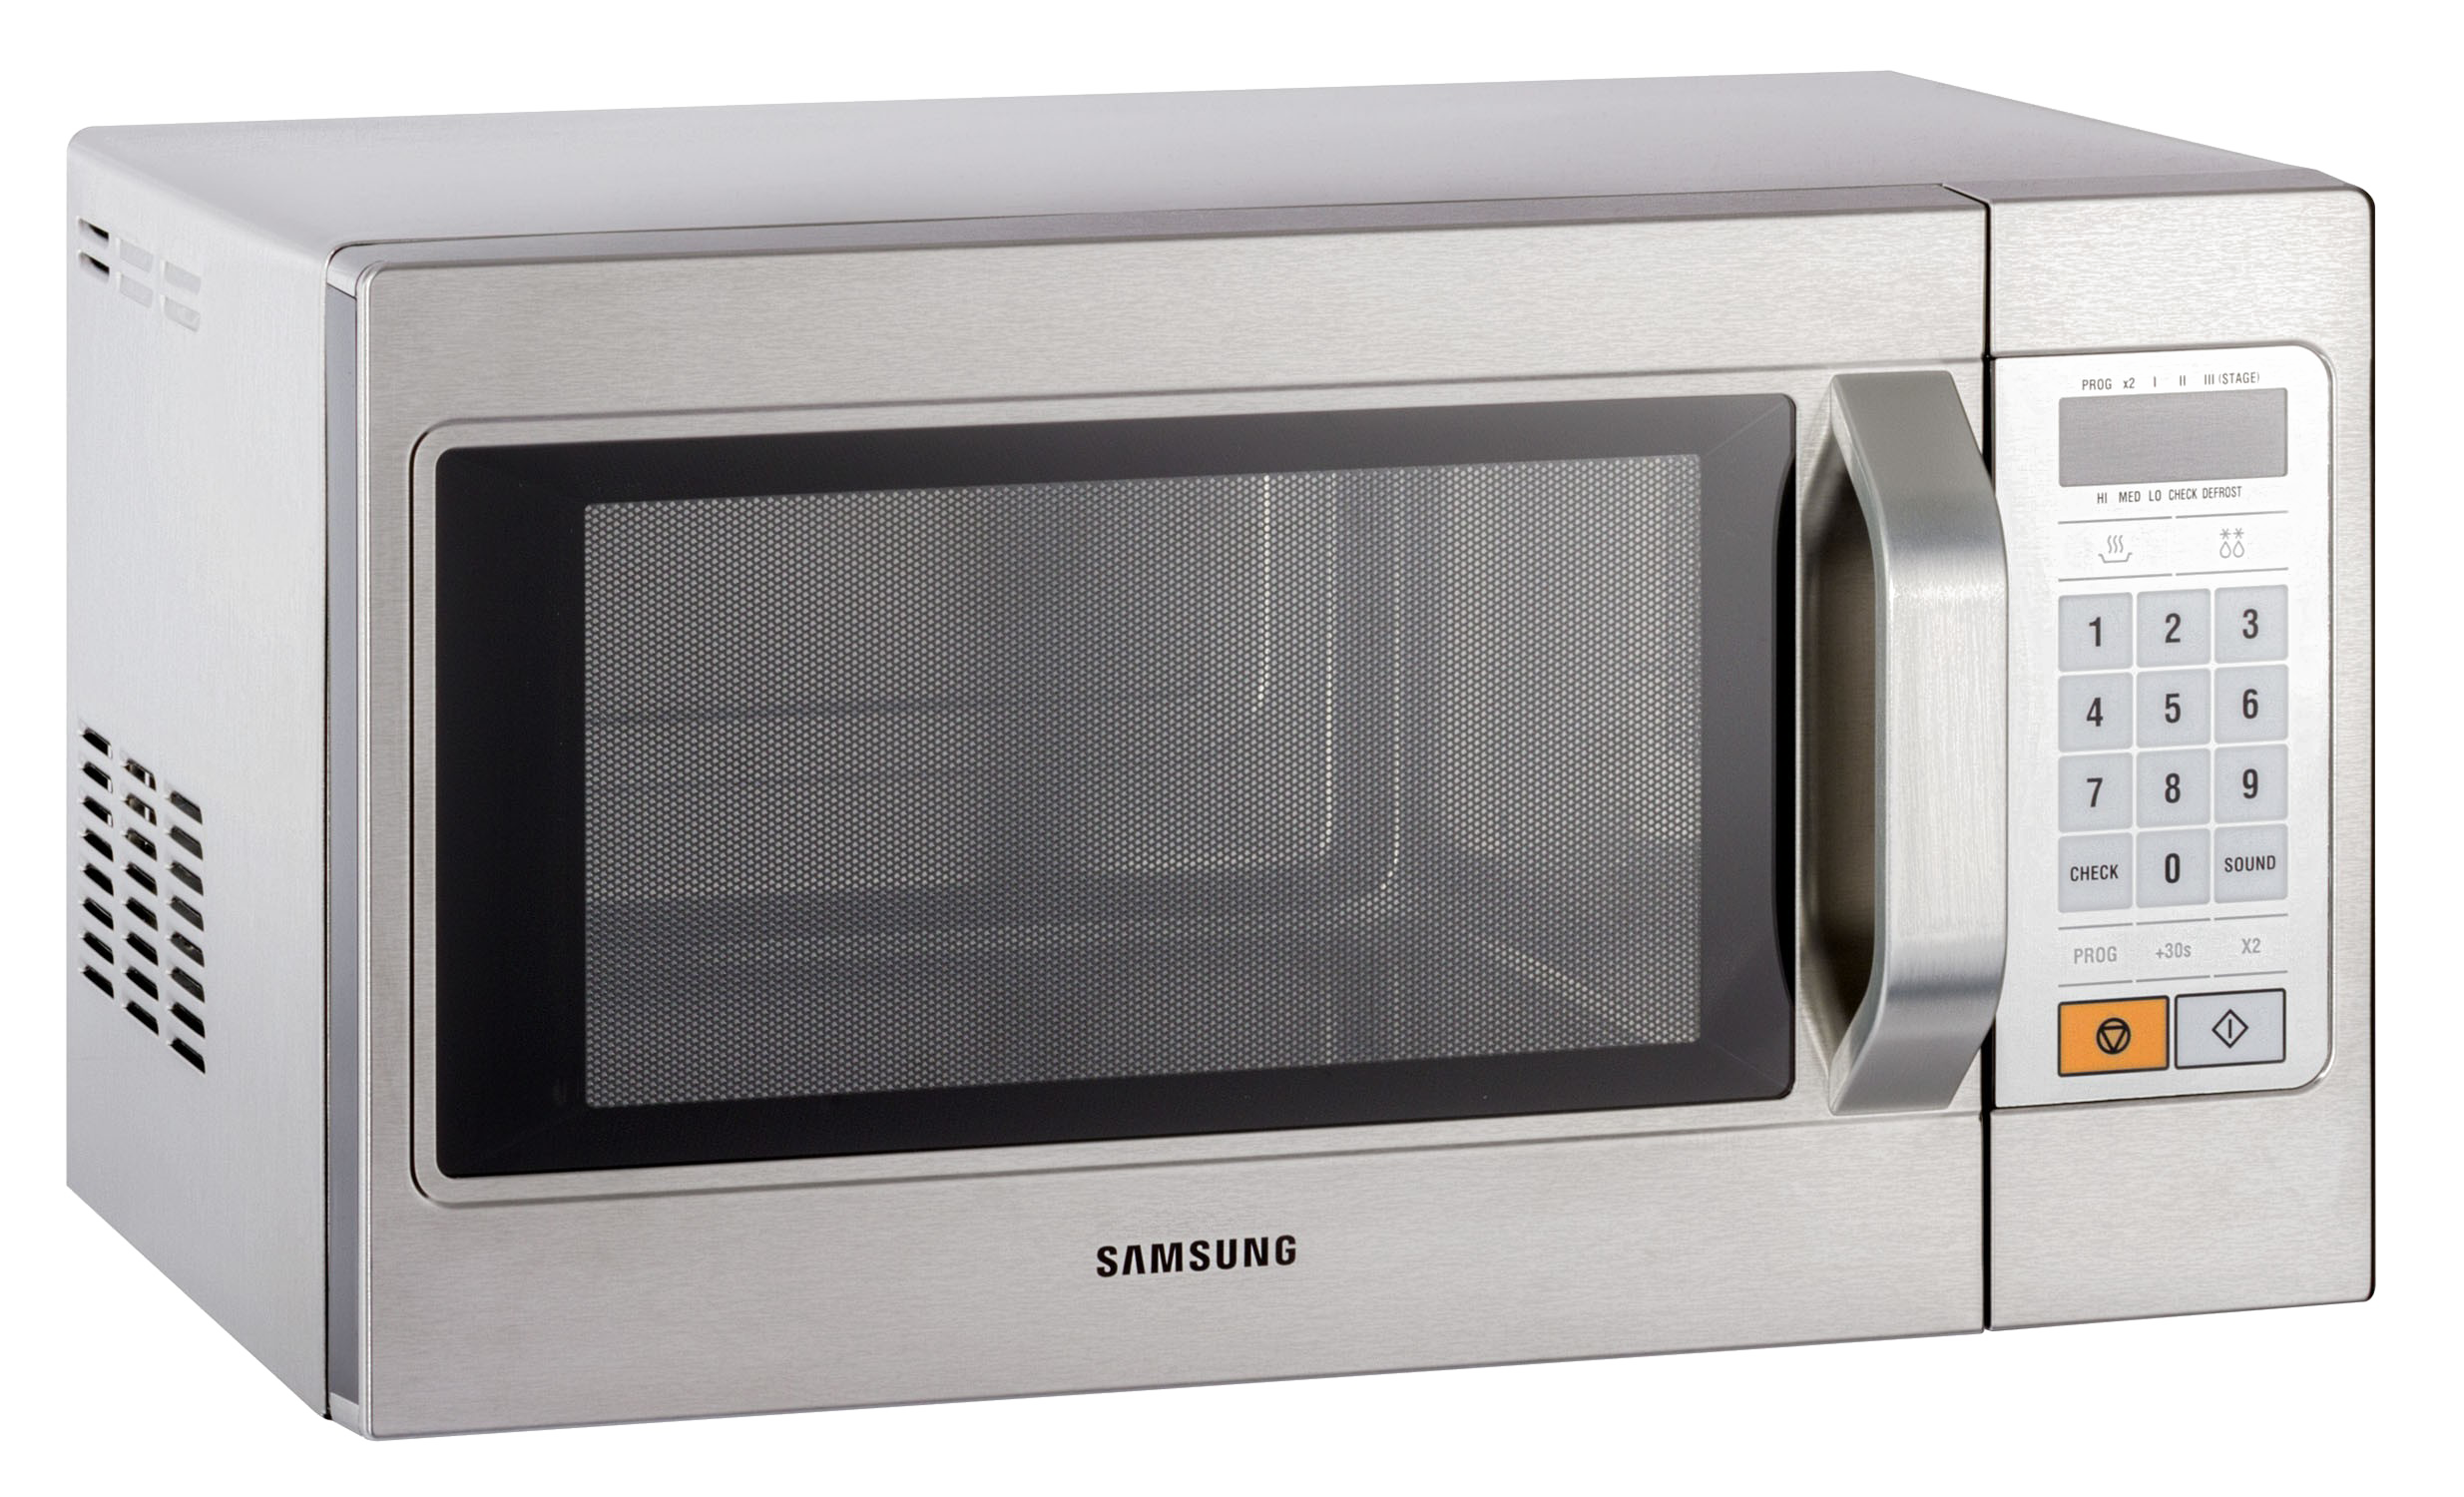 Samsung Microwave Oven PNG Pic.